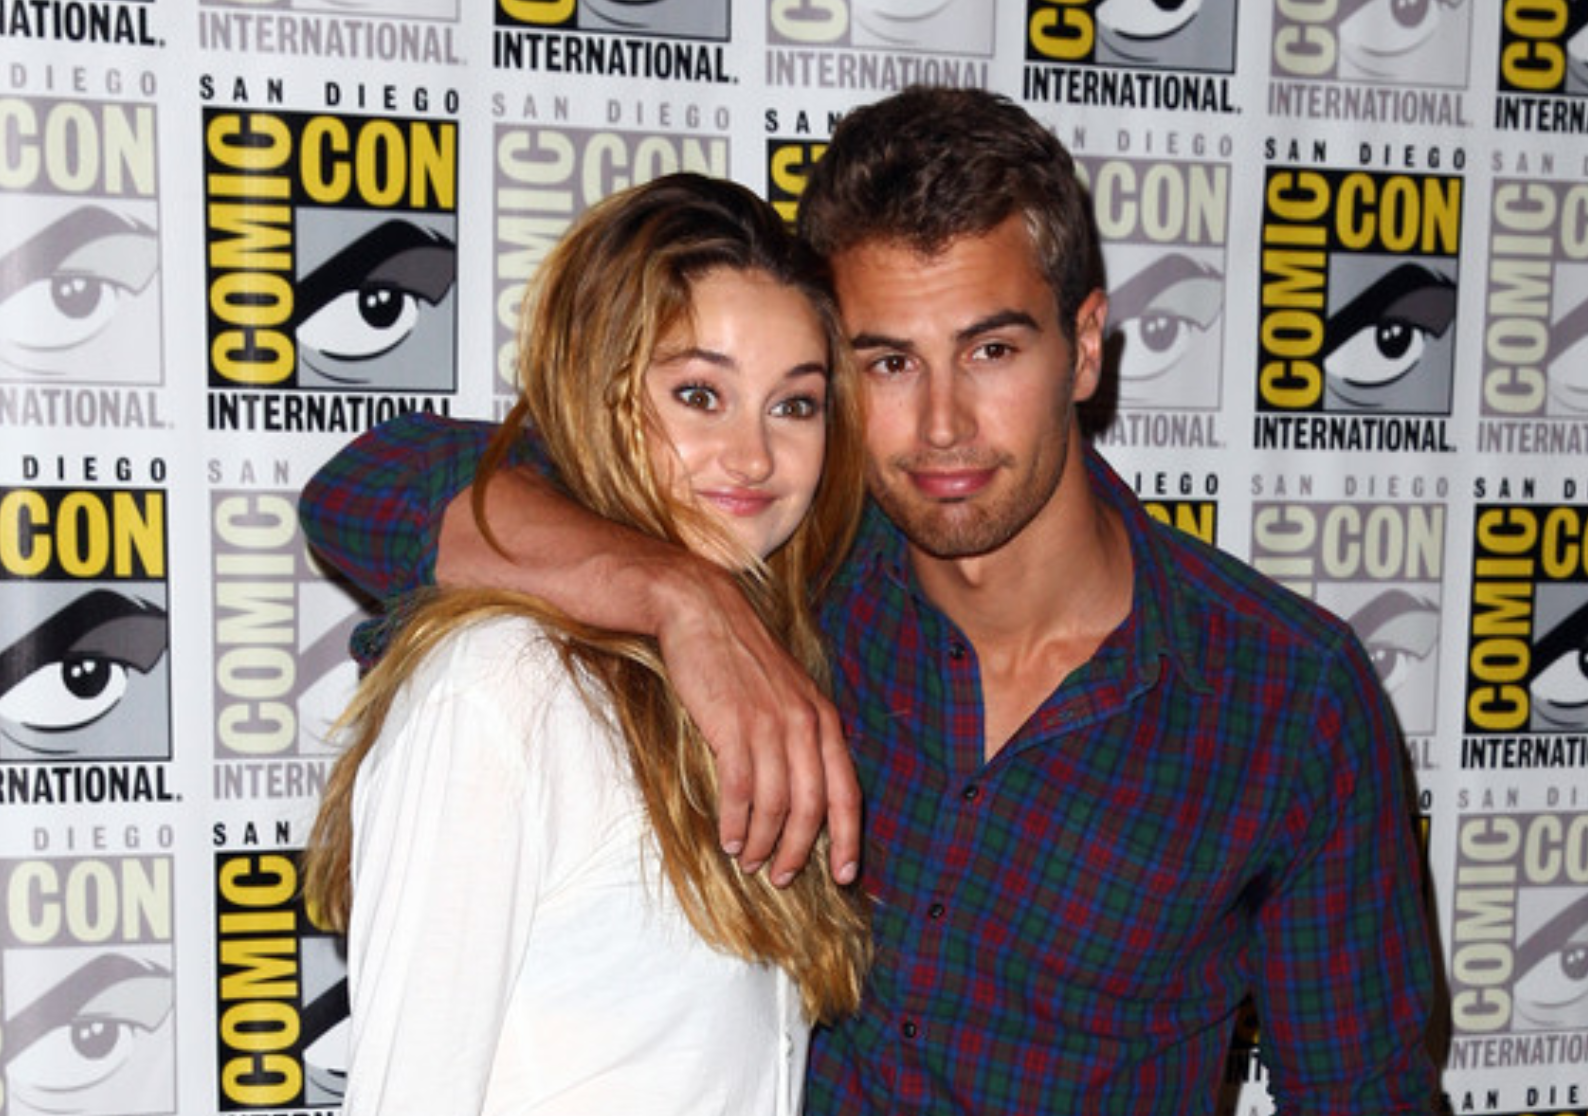 Sdcc tips july 18 2014 comic con tips shailene theo m4hsunfo